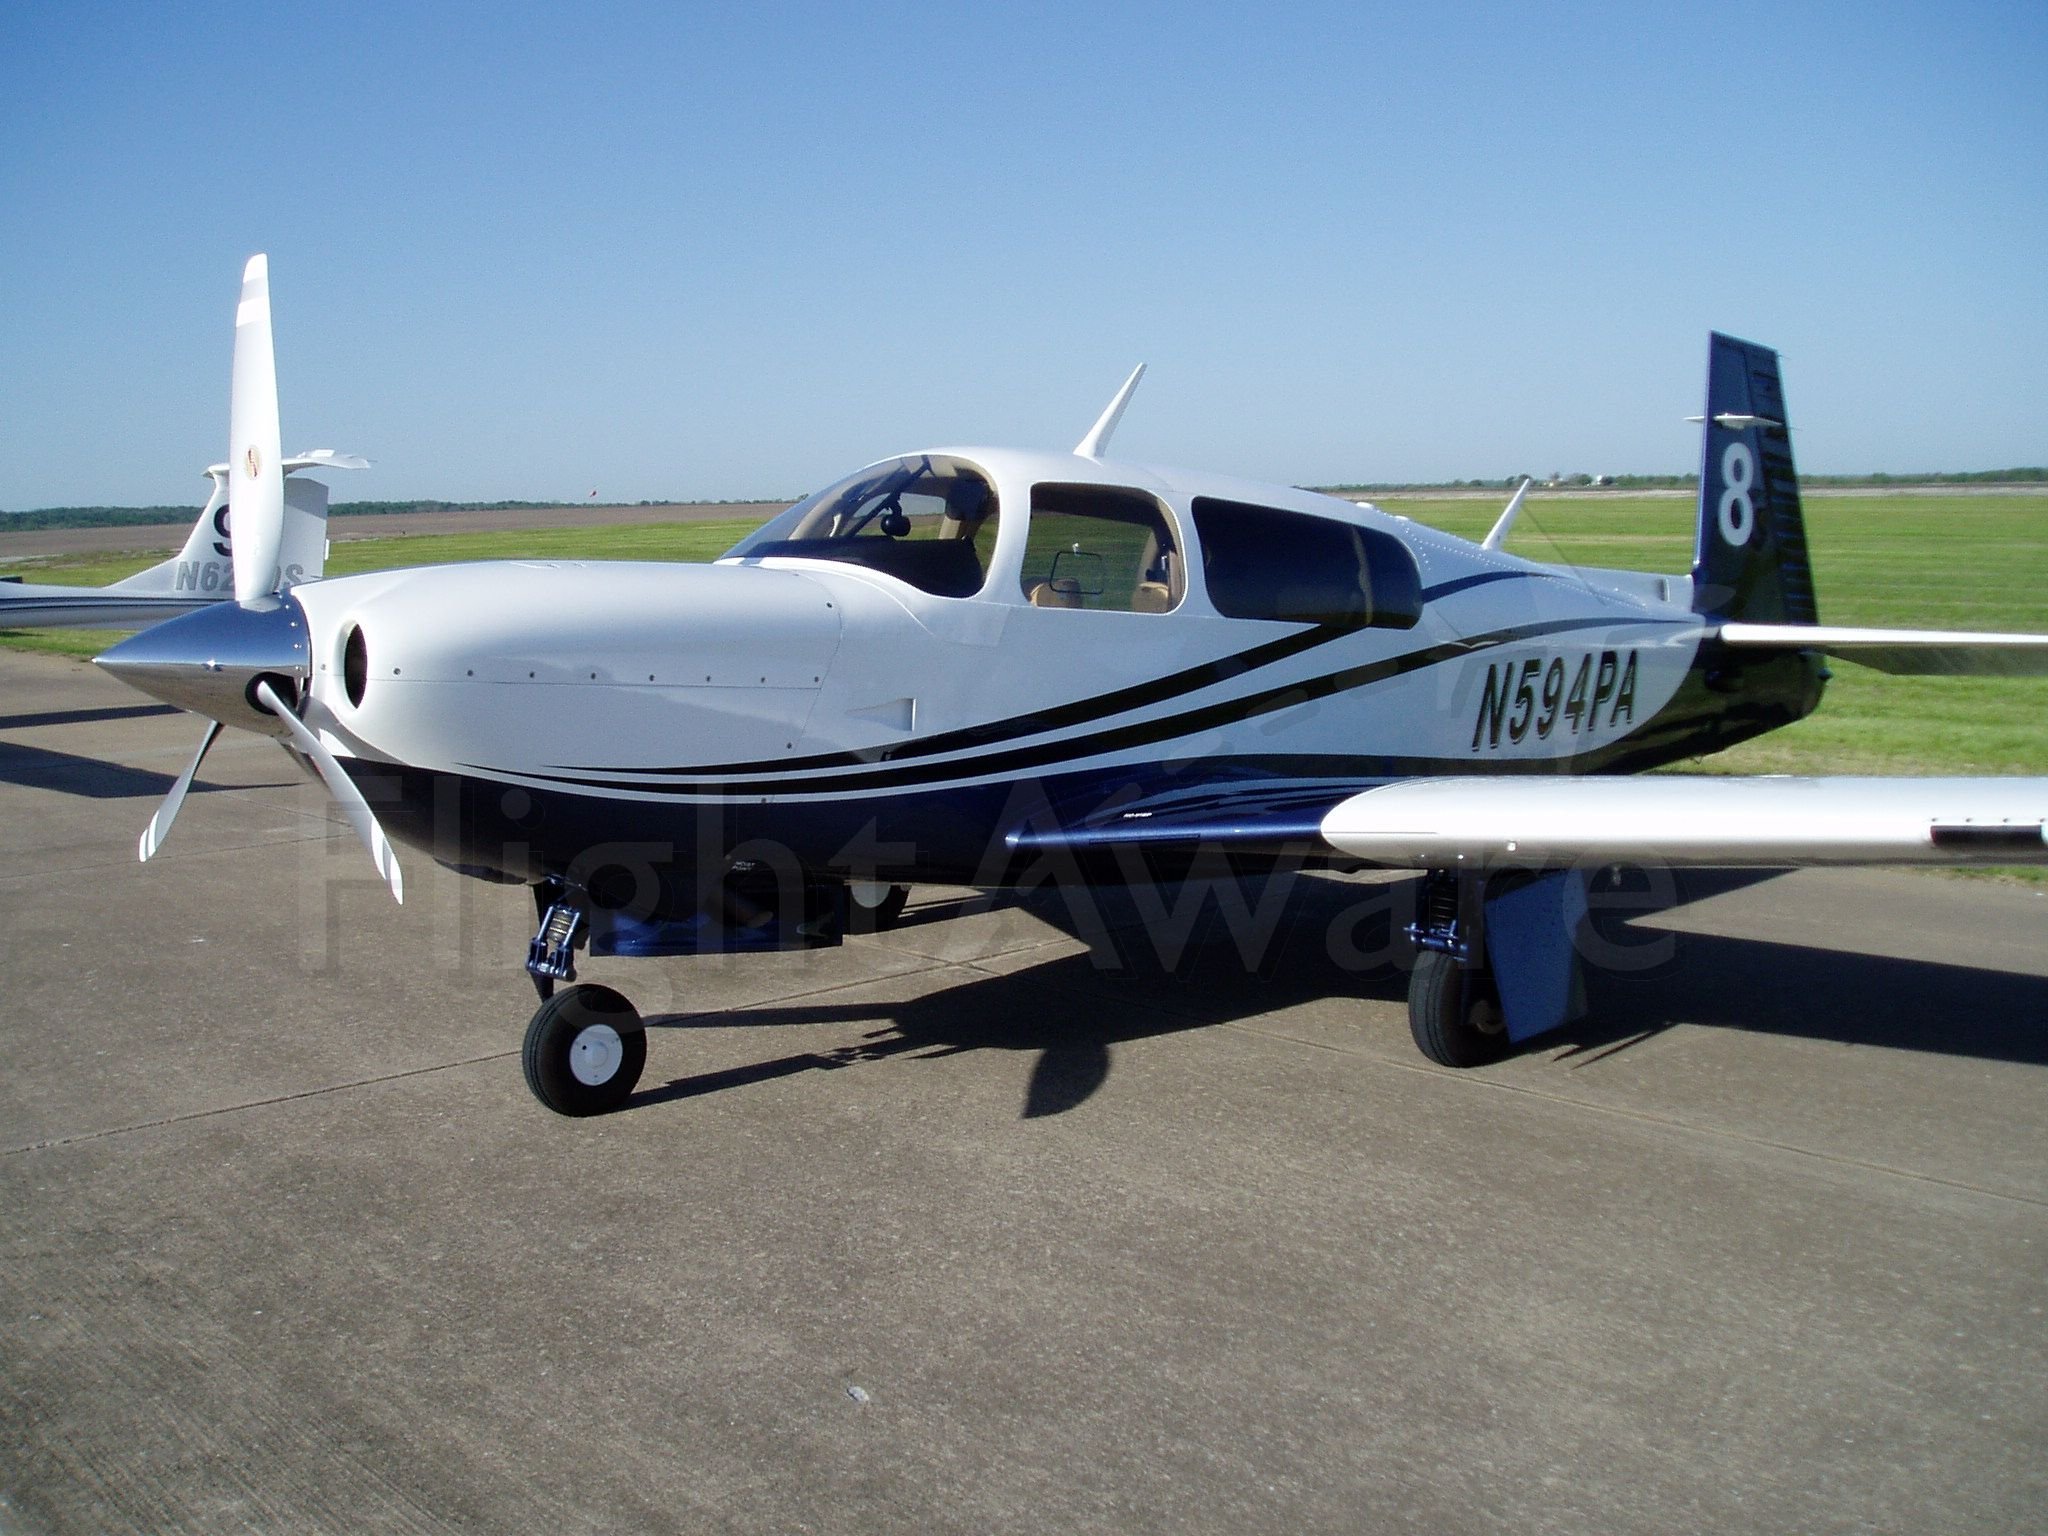 Mooney M-20 Turbo (N594PA) - Participant in the Texoma 100 Air Race at Grayson County (North Texas Regional Airport).